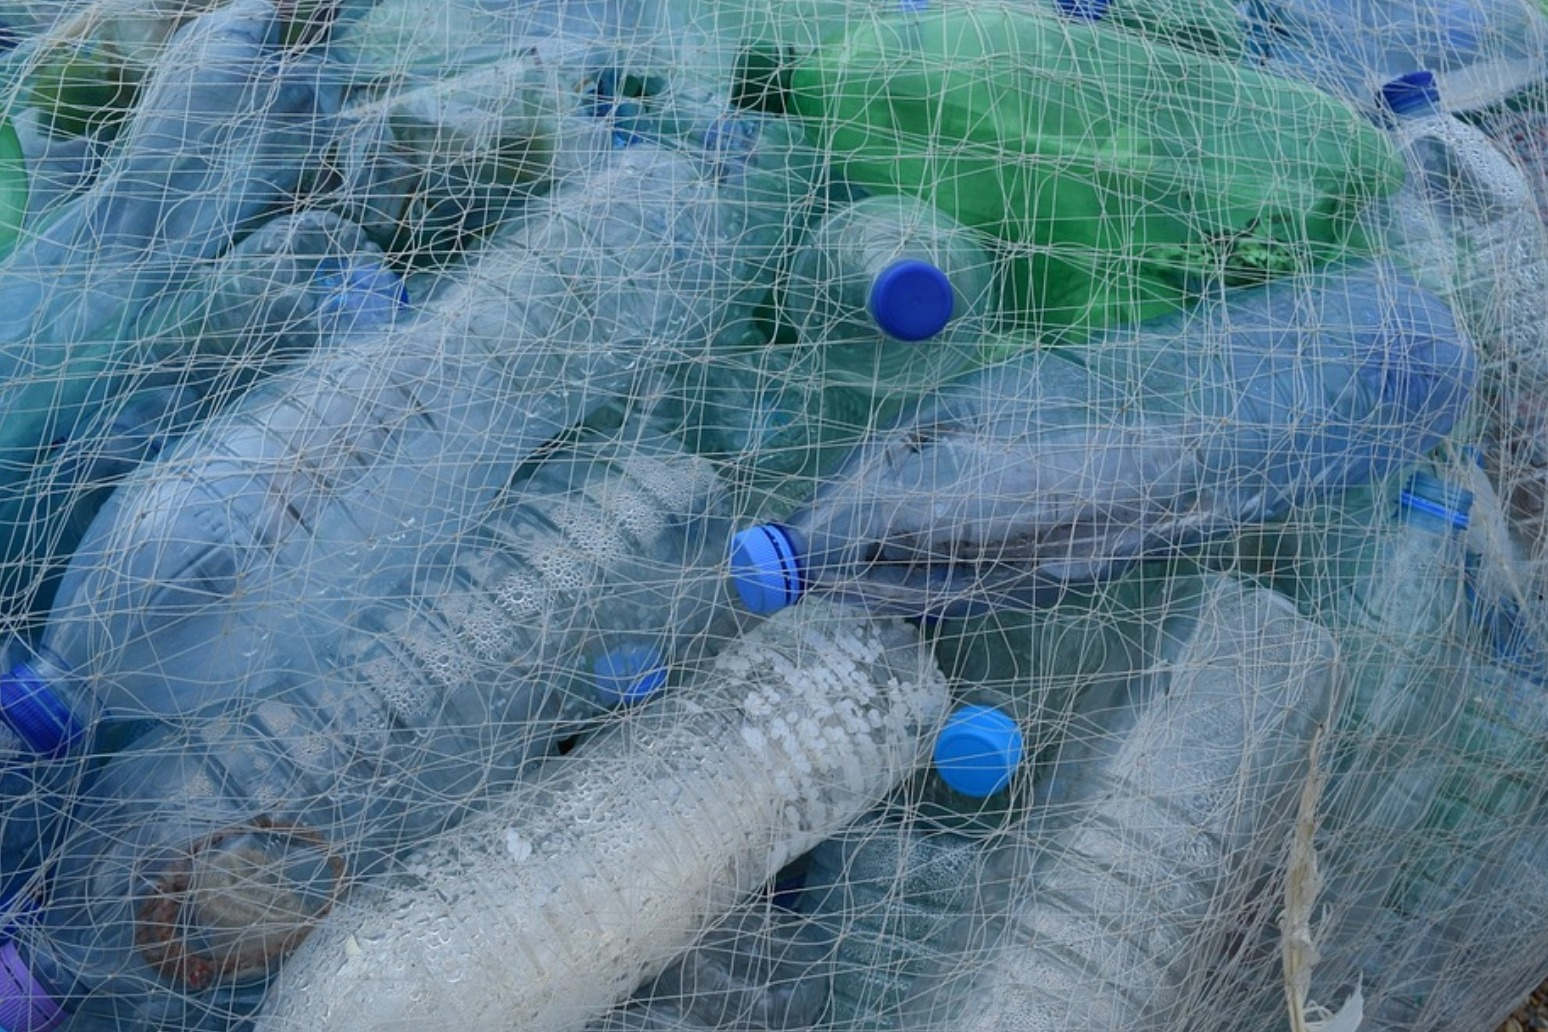 Plans announced to charge to curb plastic waste